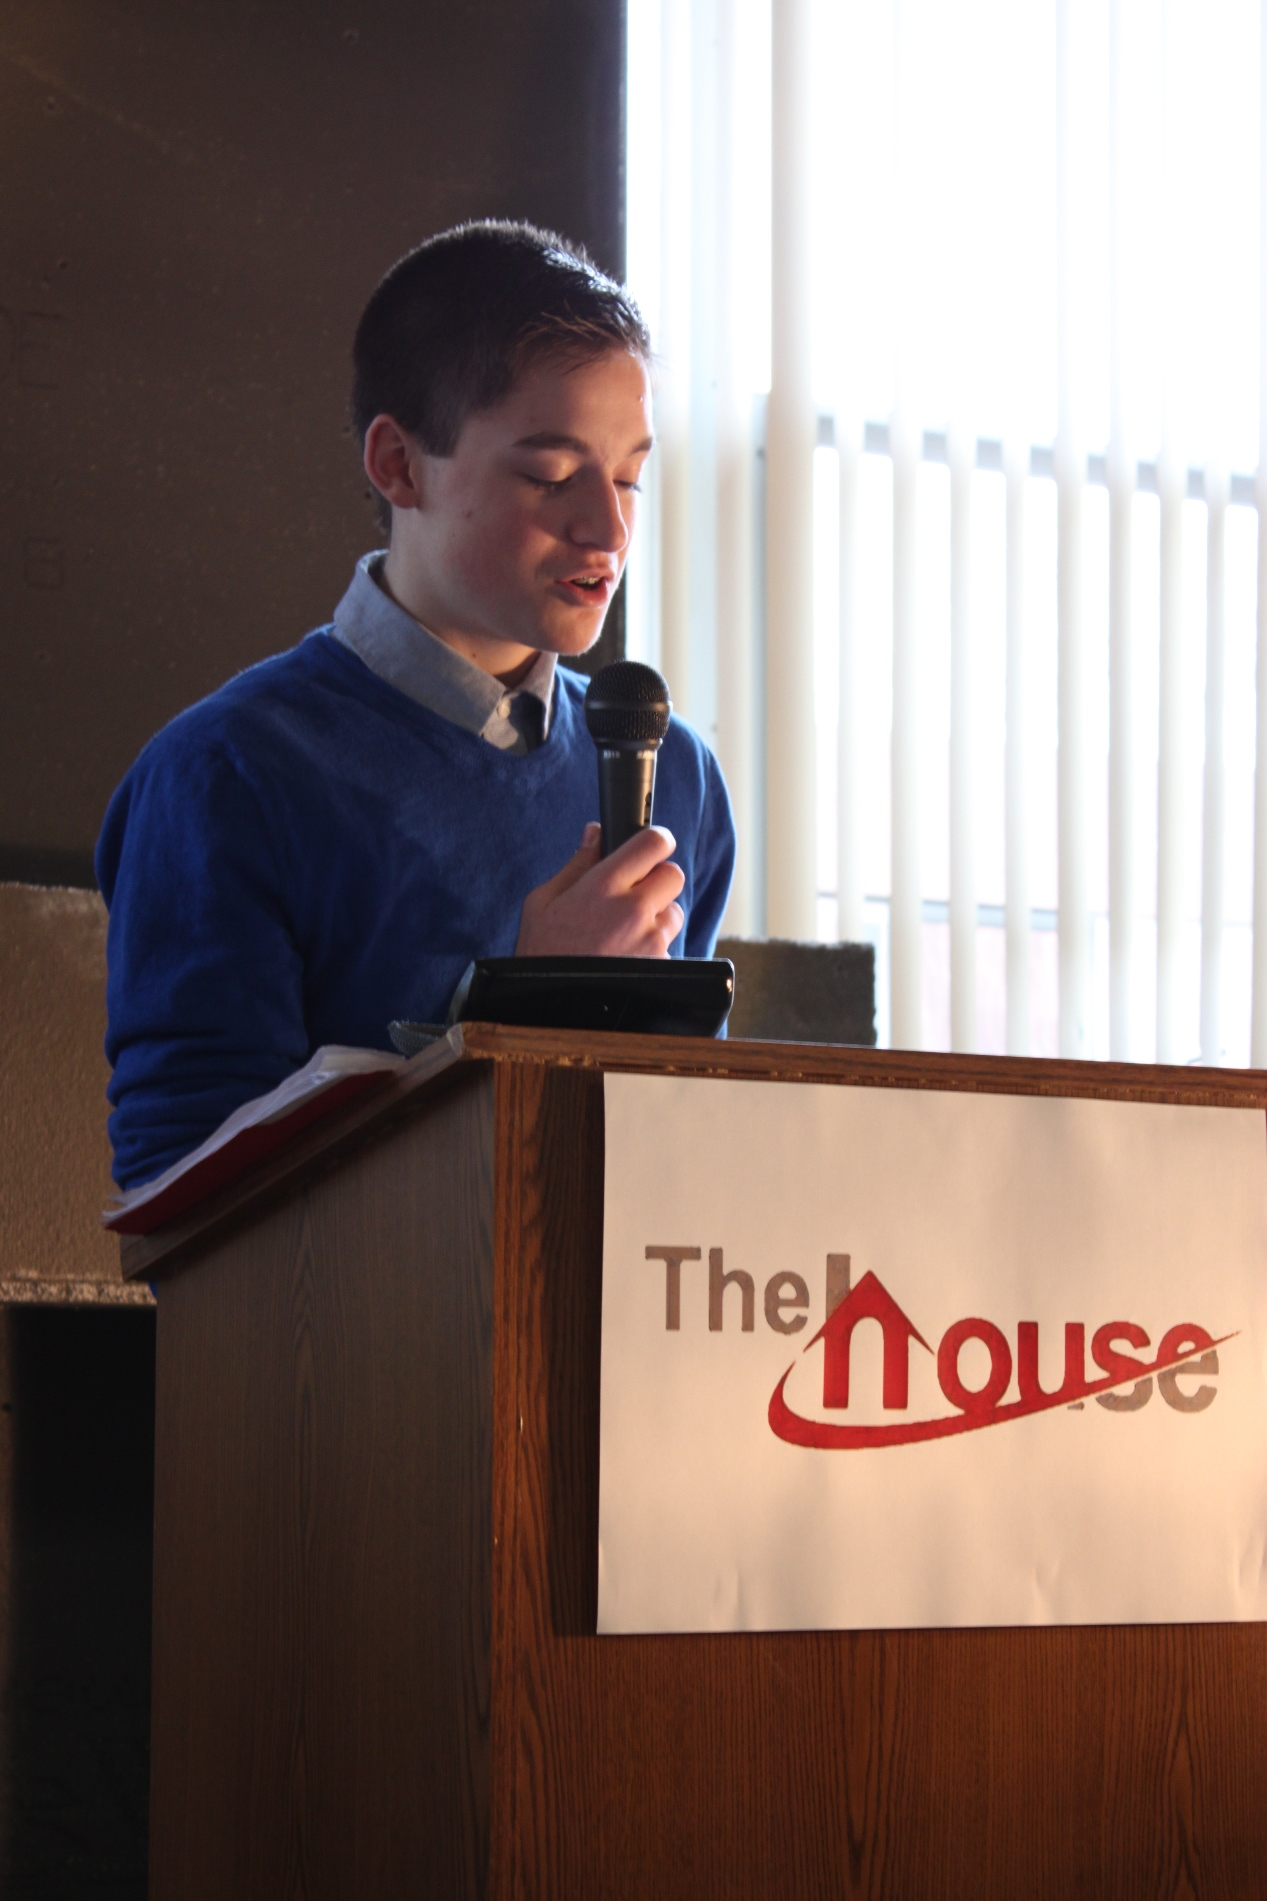 Christian Chasse gives his ECyD testimony